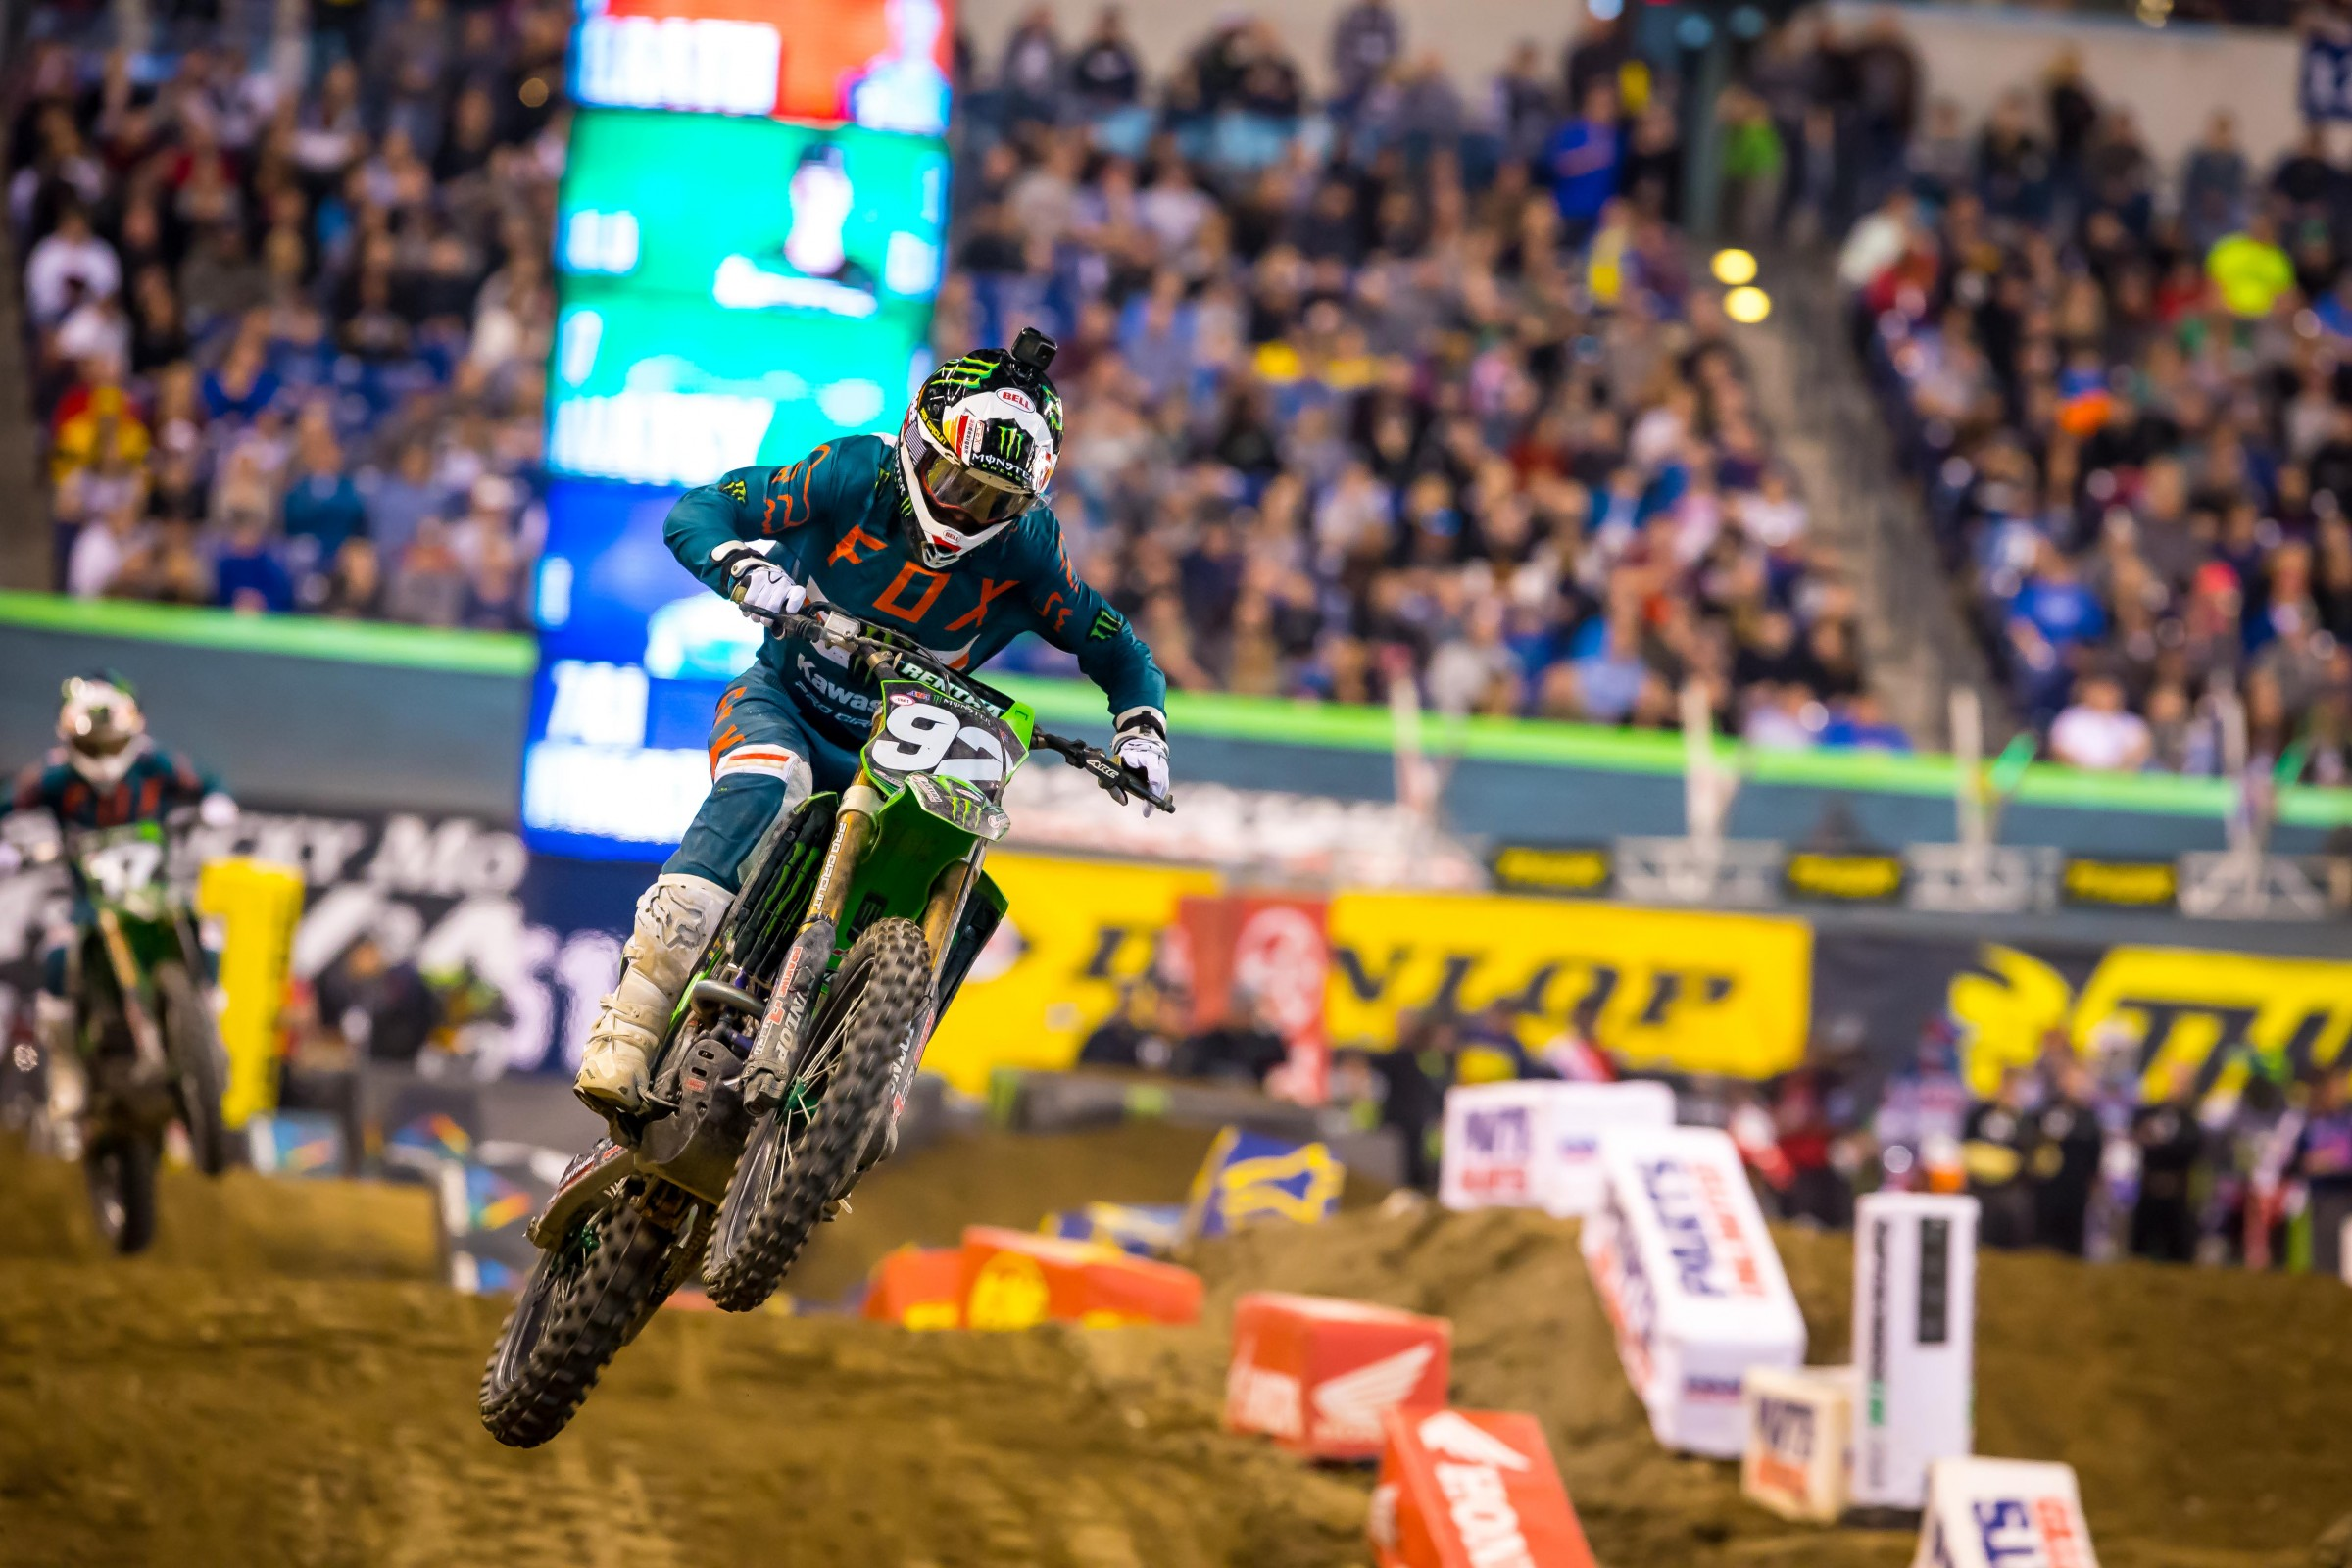 Cianciarulo will still receive second-place points for his finish on Saturday night.